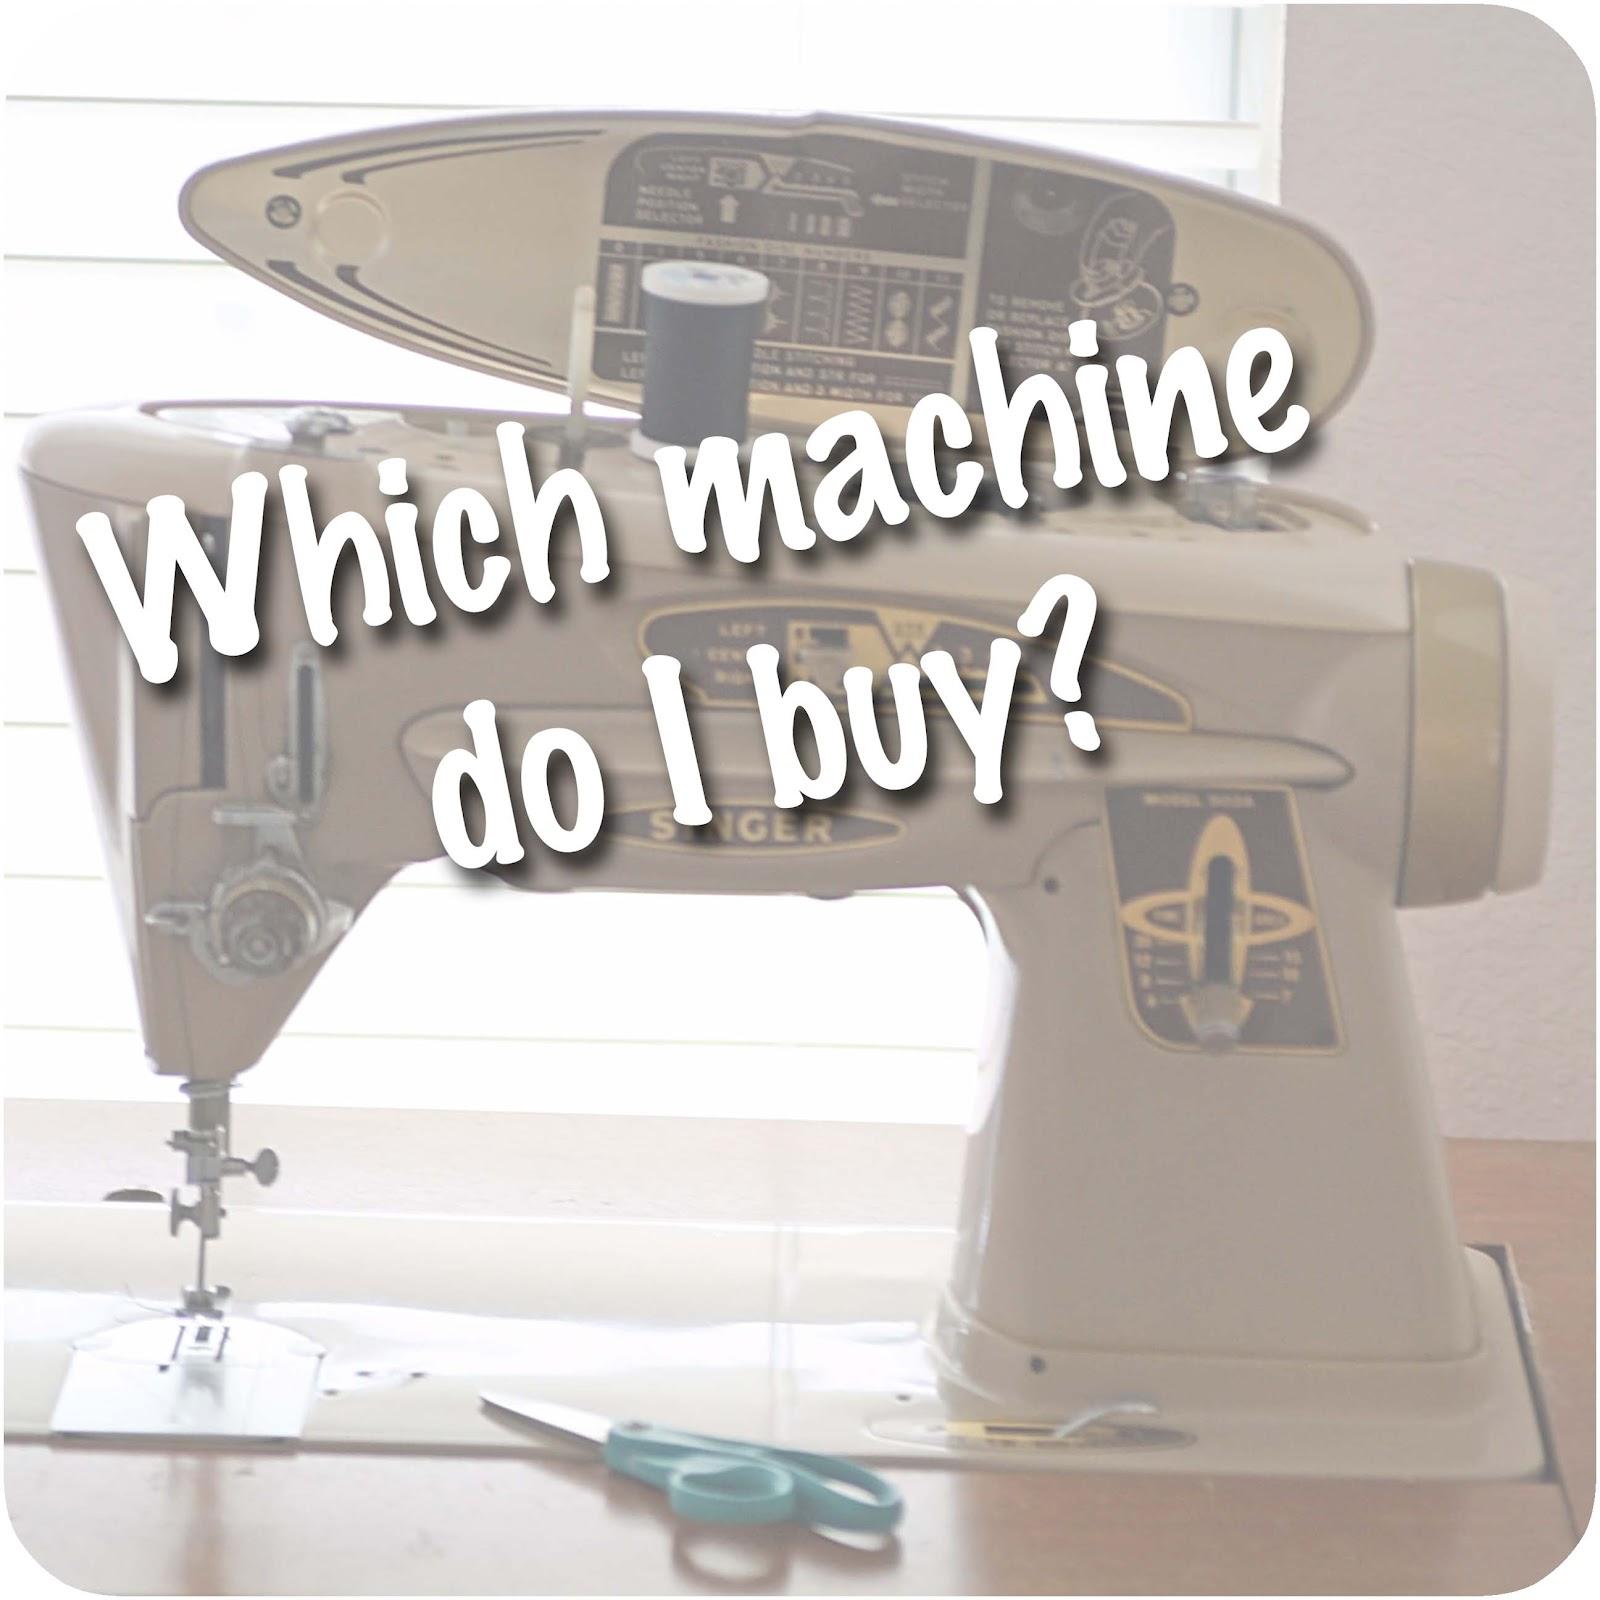 Which Sewing Machine Should I Buy? - Melly Sews